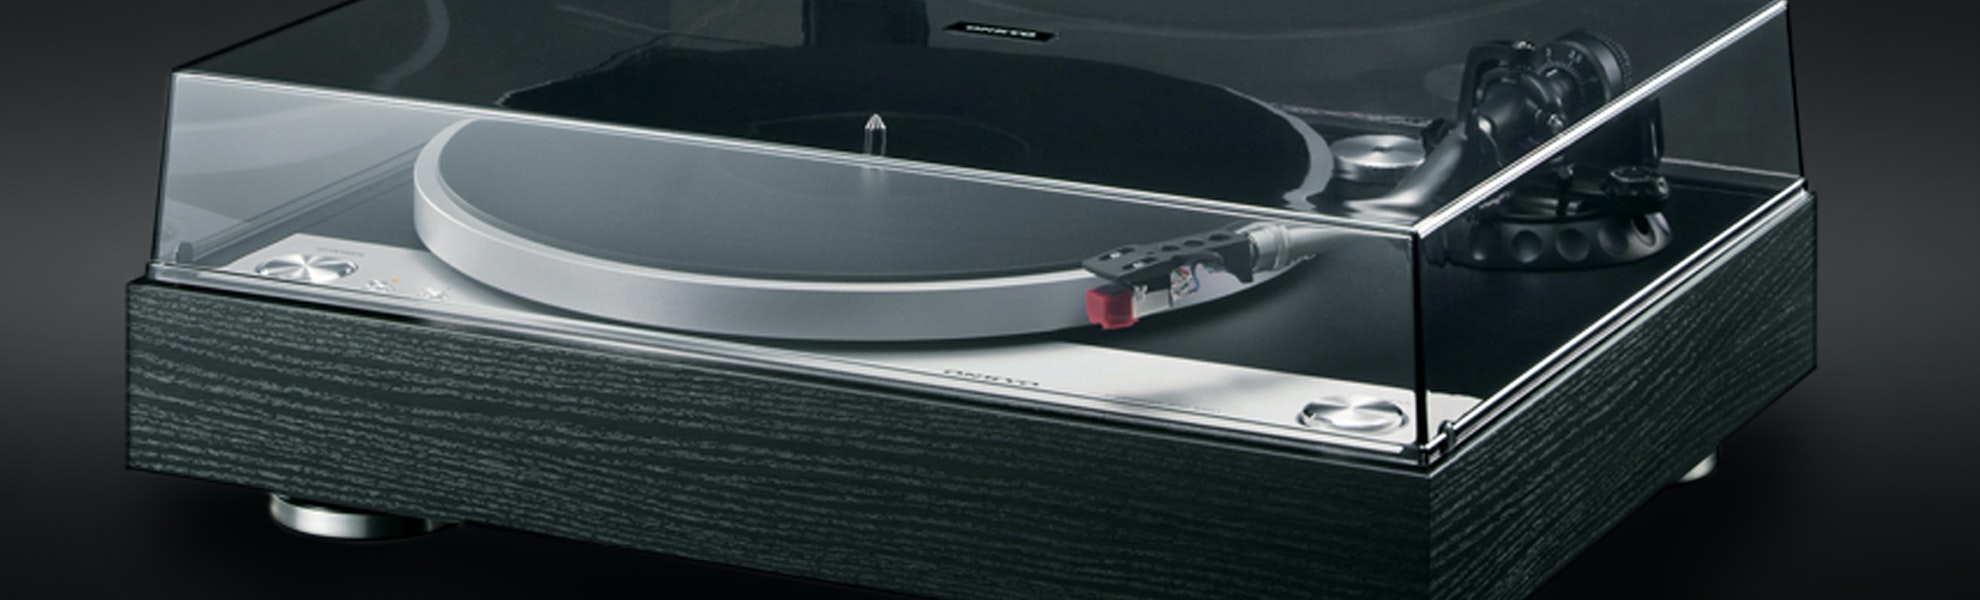 Onkyo CP-1050 Turntable